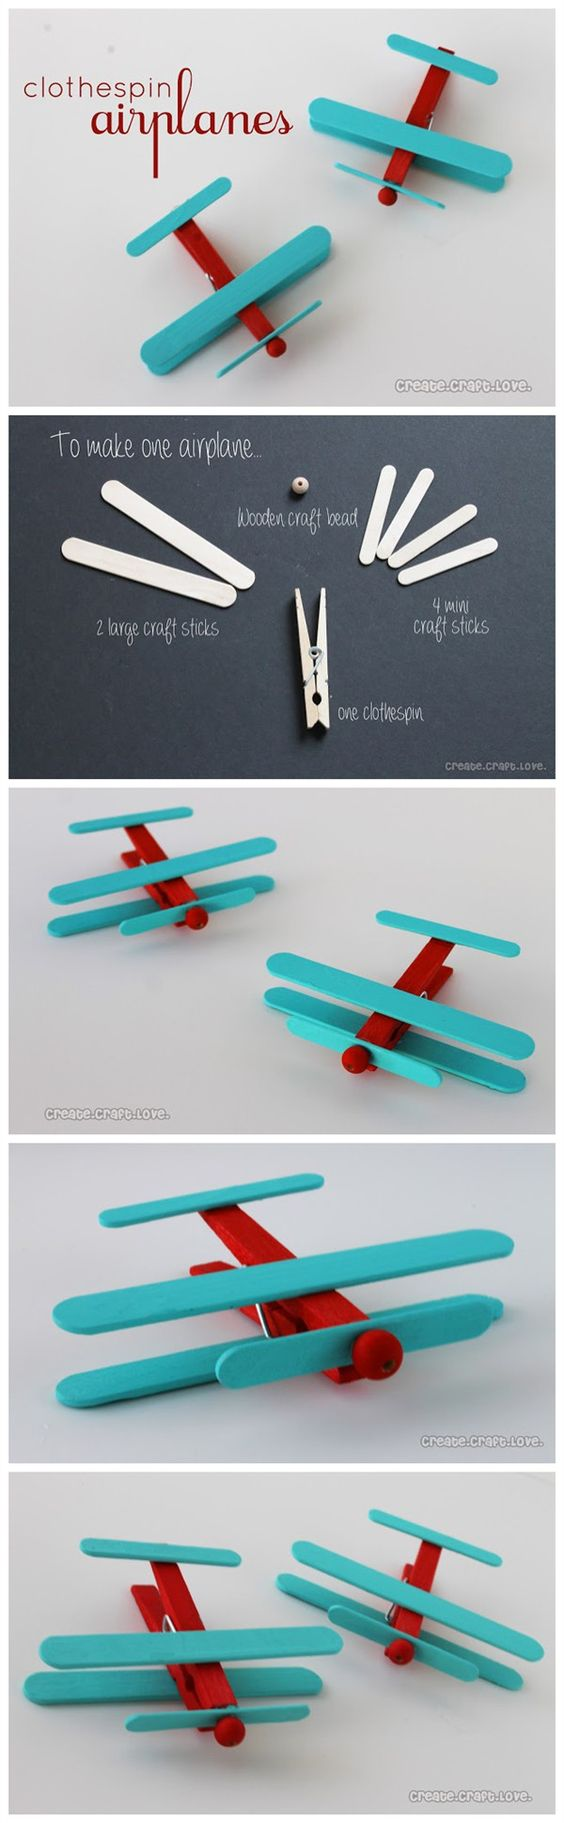 #Diy Clothespin #Airplanes #Tutorials: